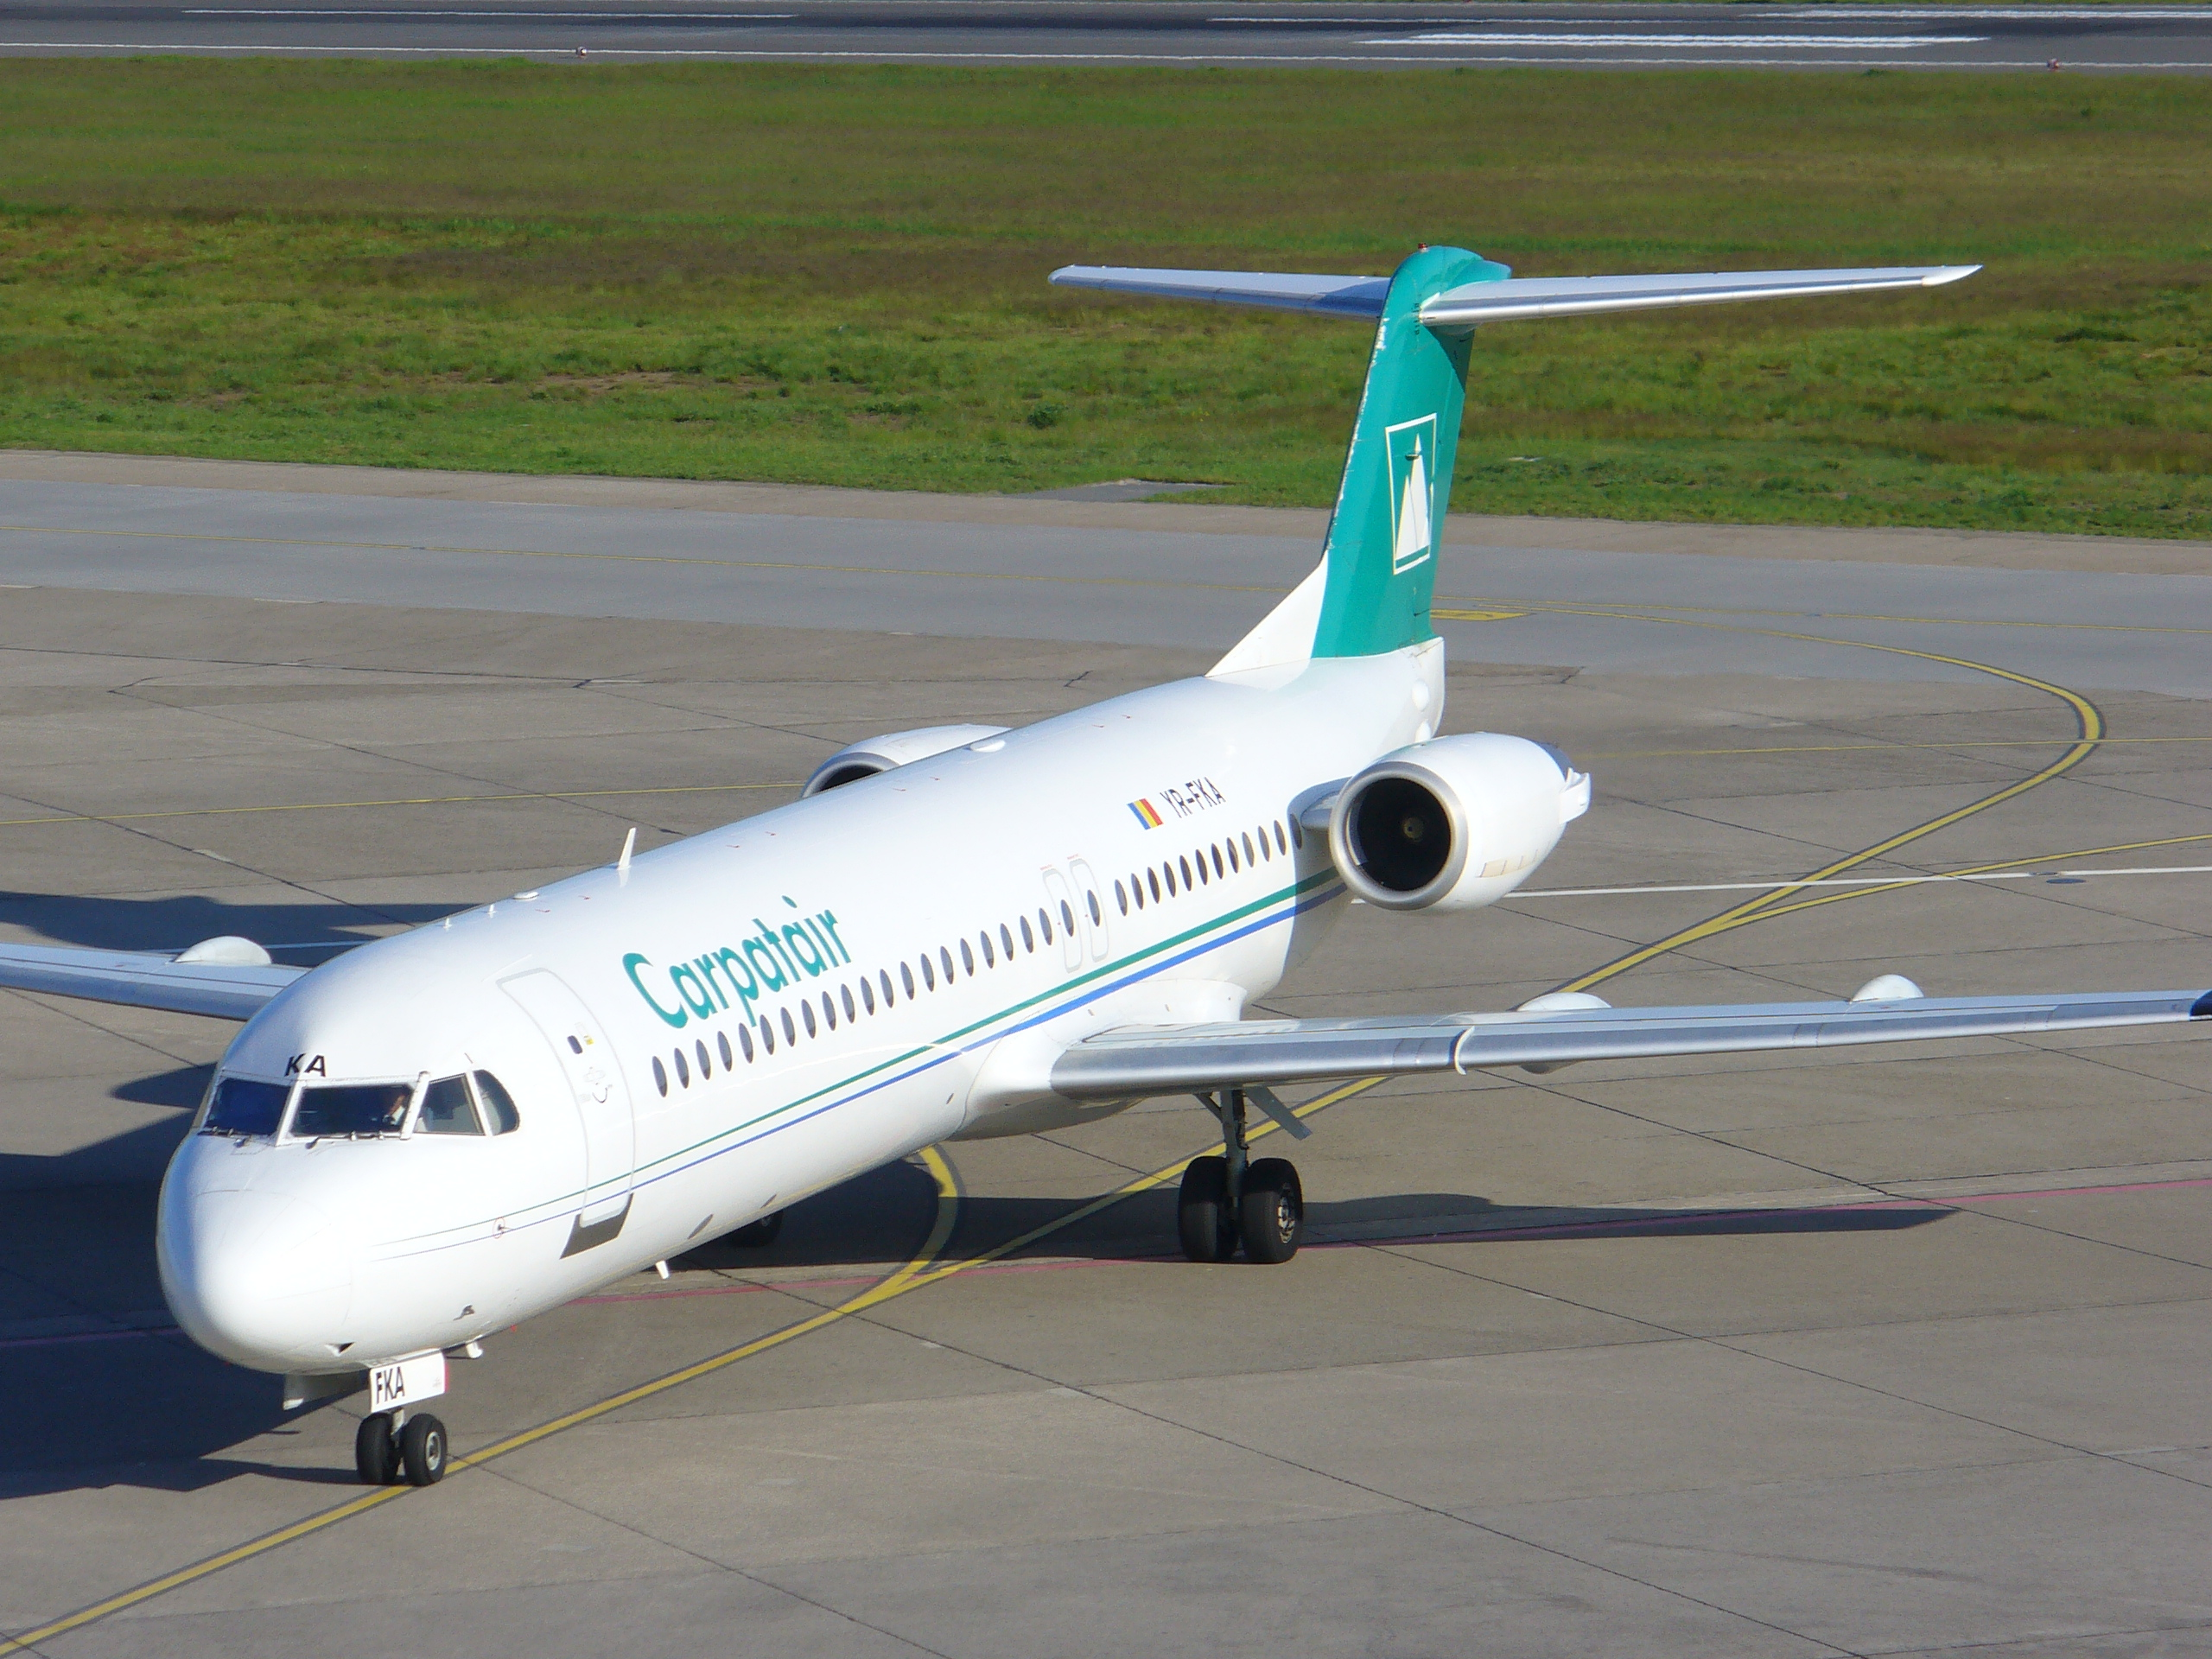 Airline Karpateyr (Carpatair). Official sayt.2